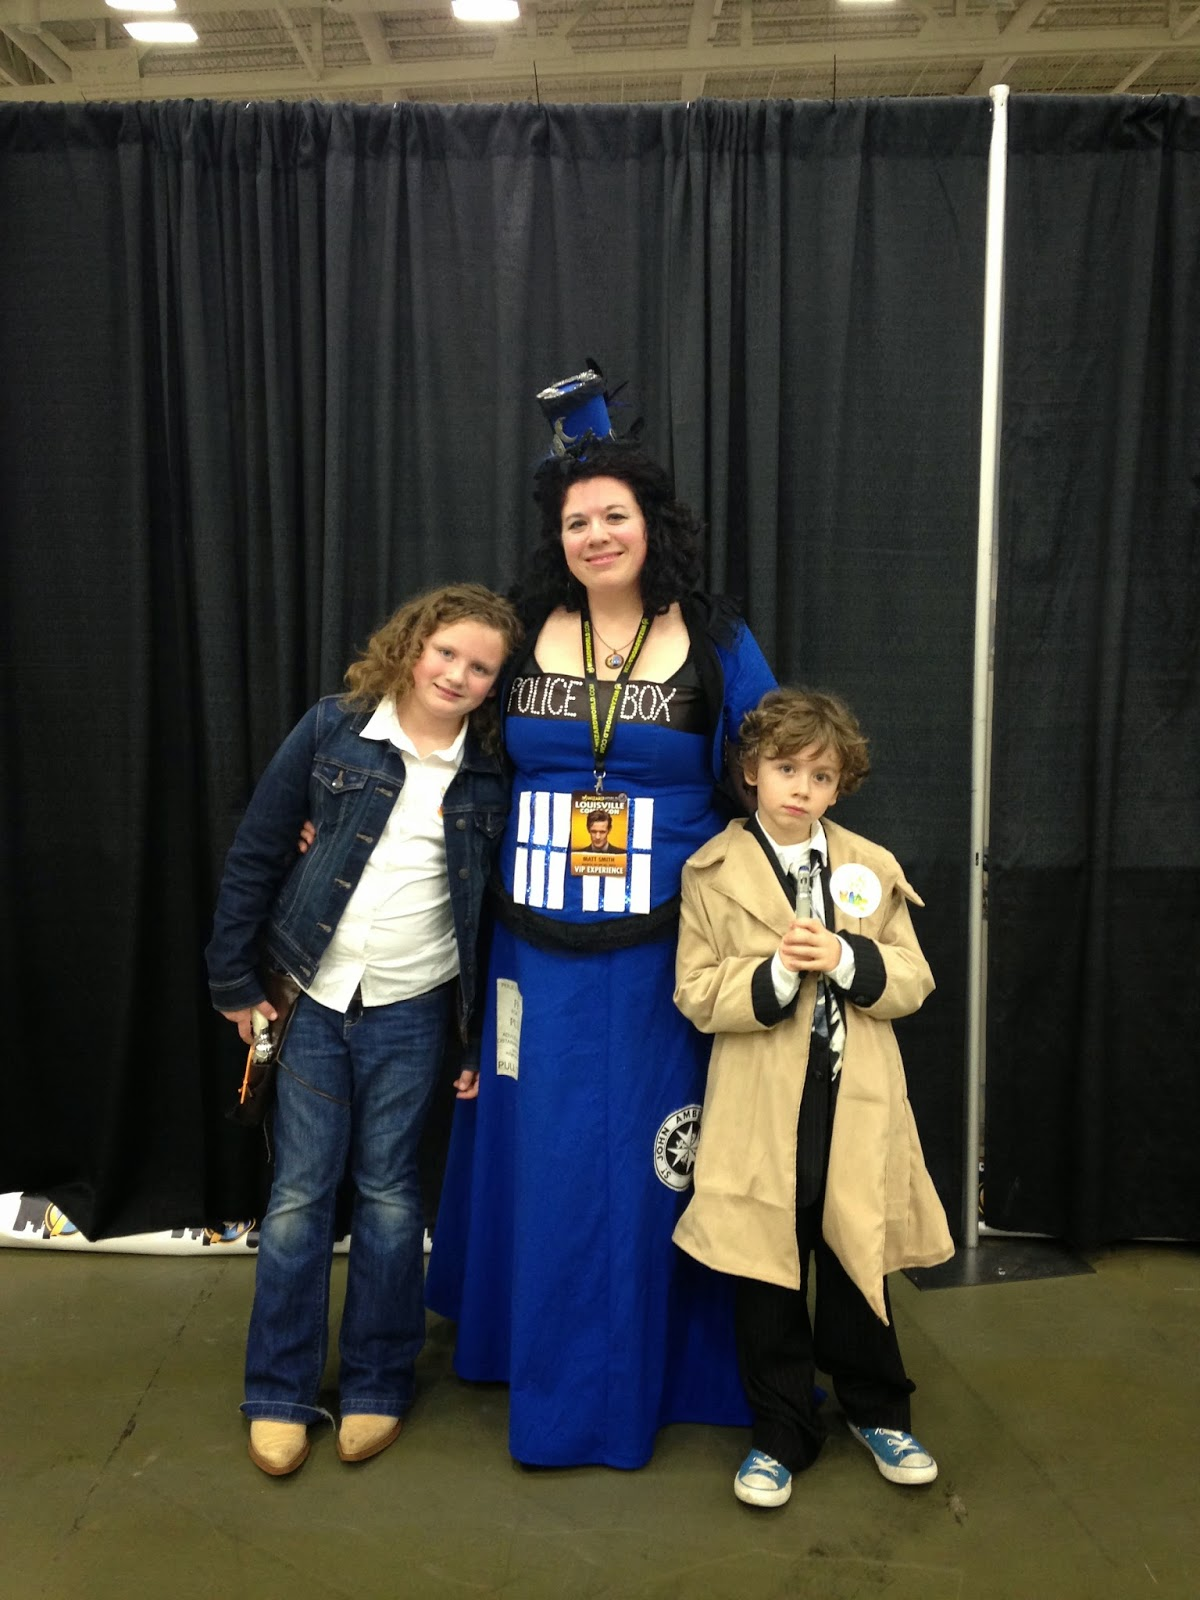 A TARDIS with River Song and the 10th Doctor